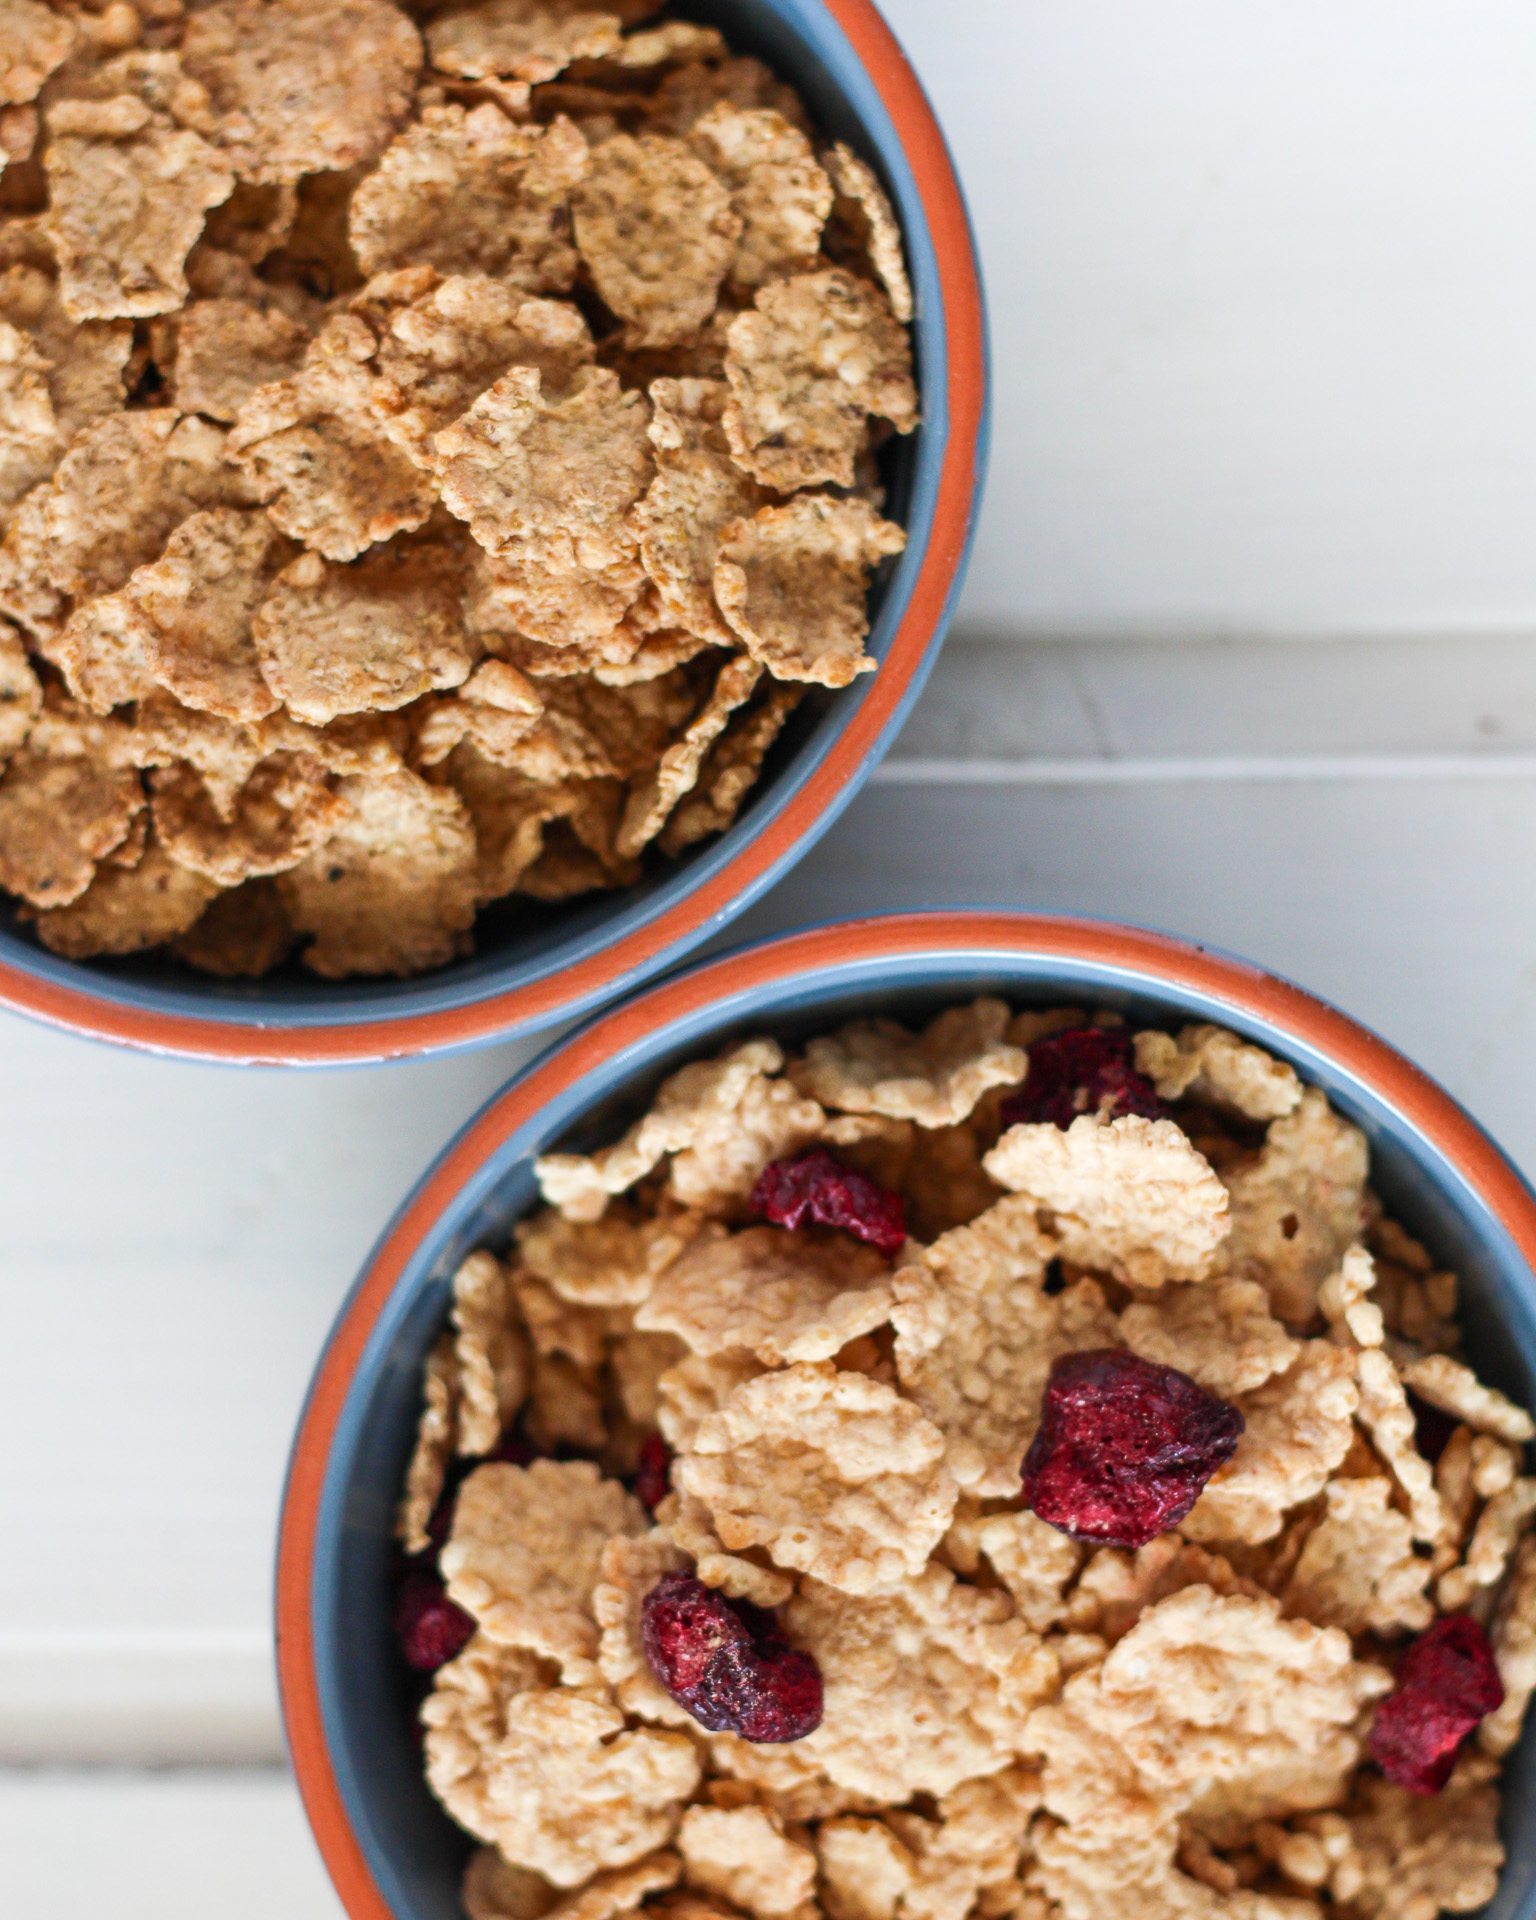 Semper glutenfrei Flakes & Fibre und Flakes & Red Berries